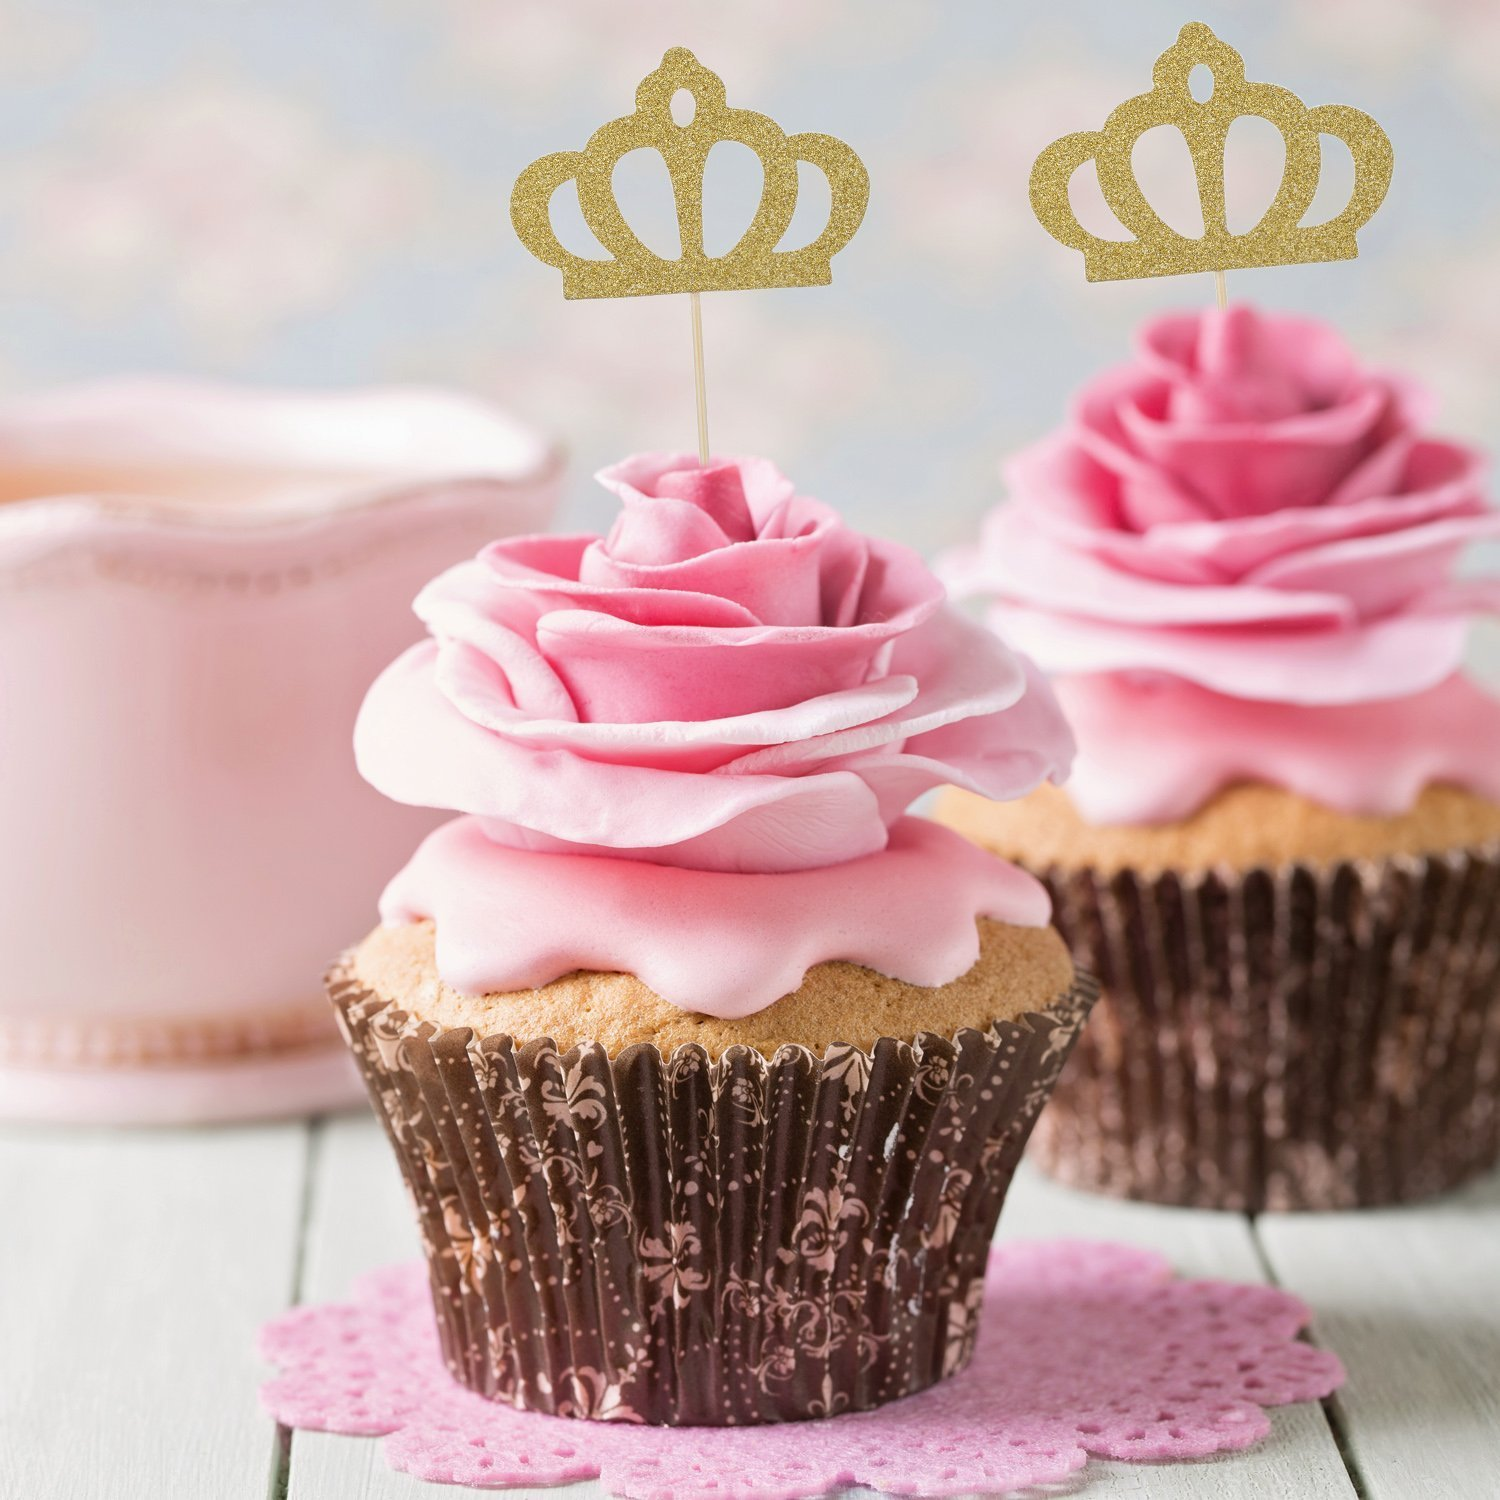 TOODOO 50 Pack Gold Glitter Crown Cupcake Toppers Glitter Party Cake ...